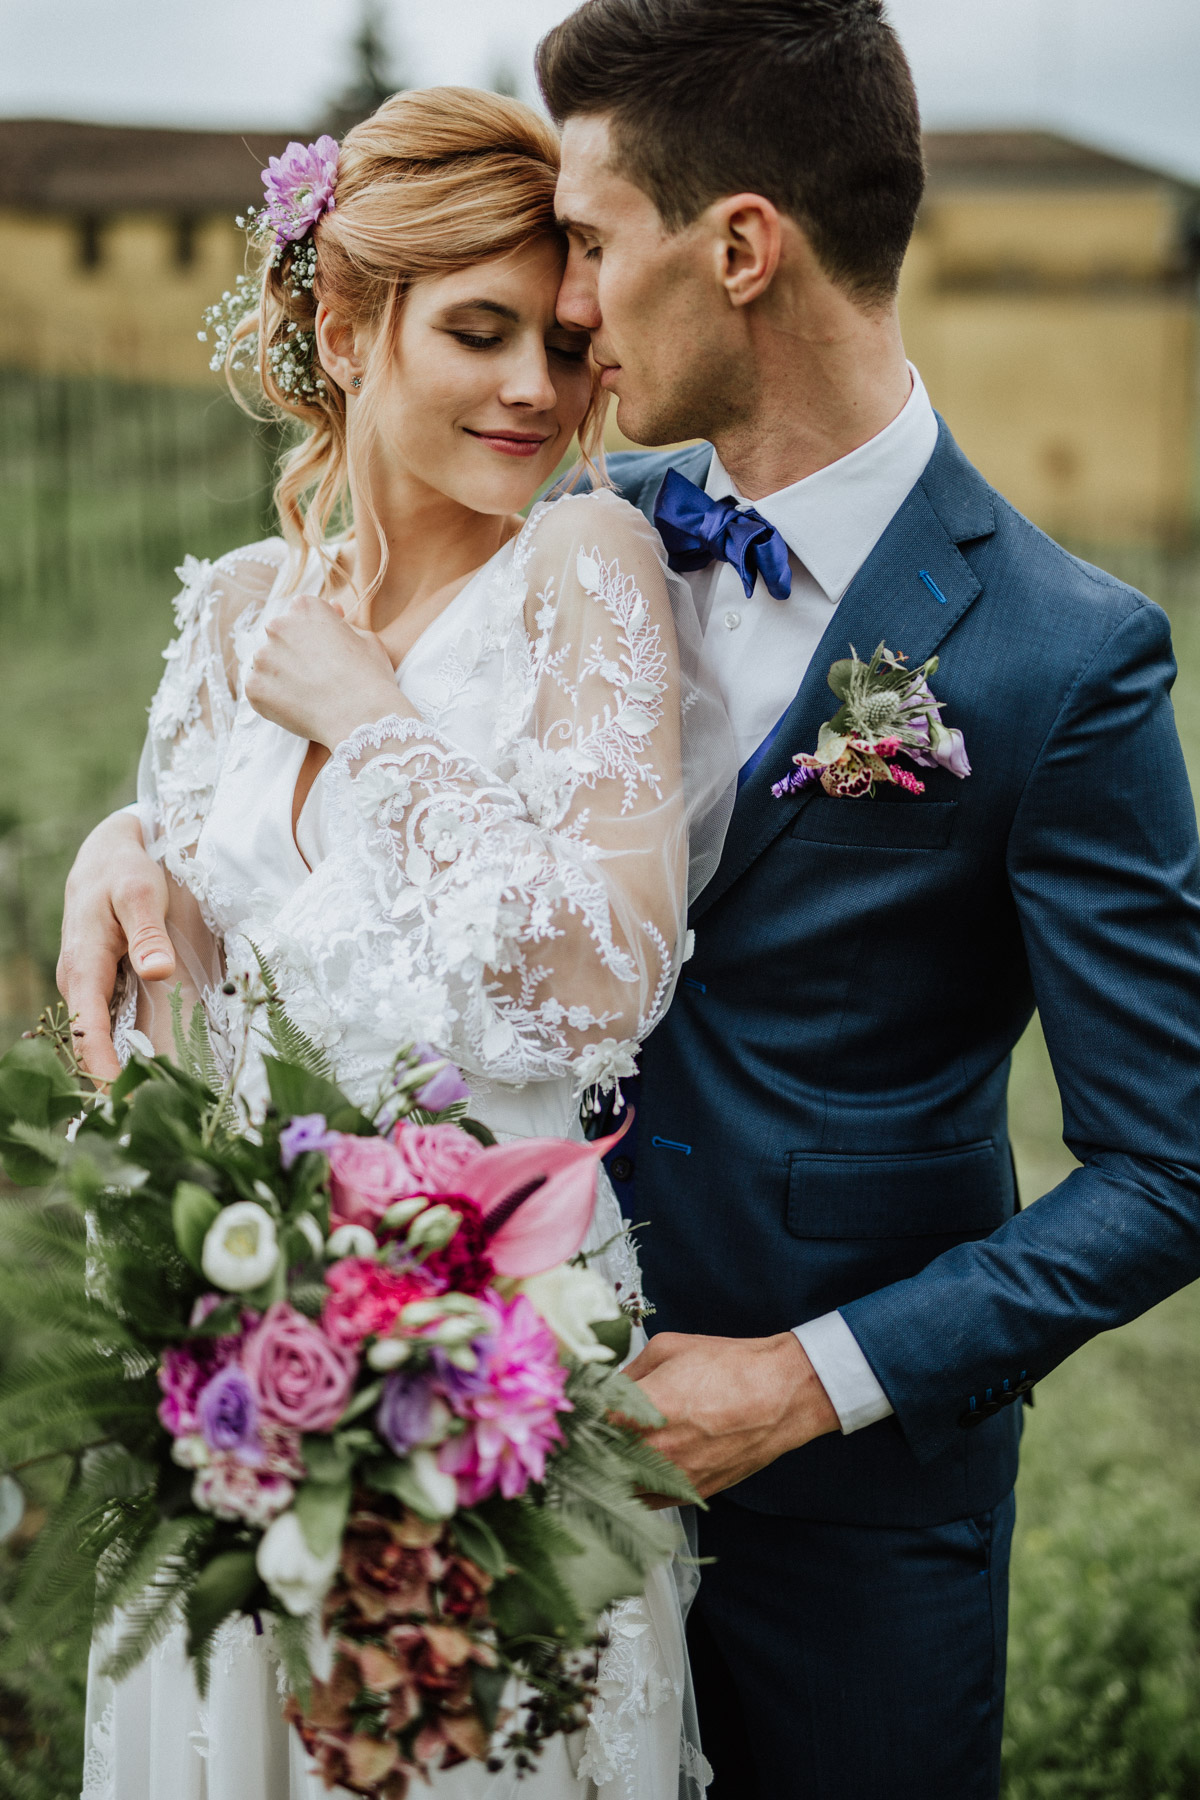 Romantic couple shot with lace bridal dress made by Marianna Lanzilli and orchid violet bouquet